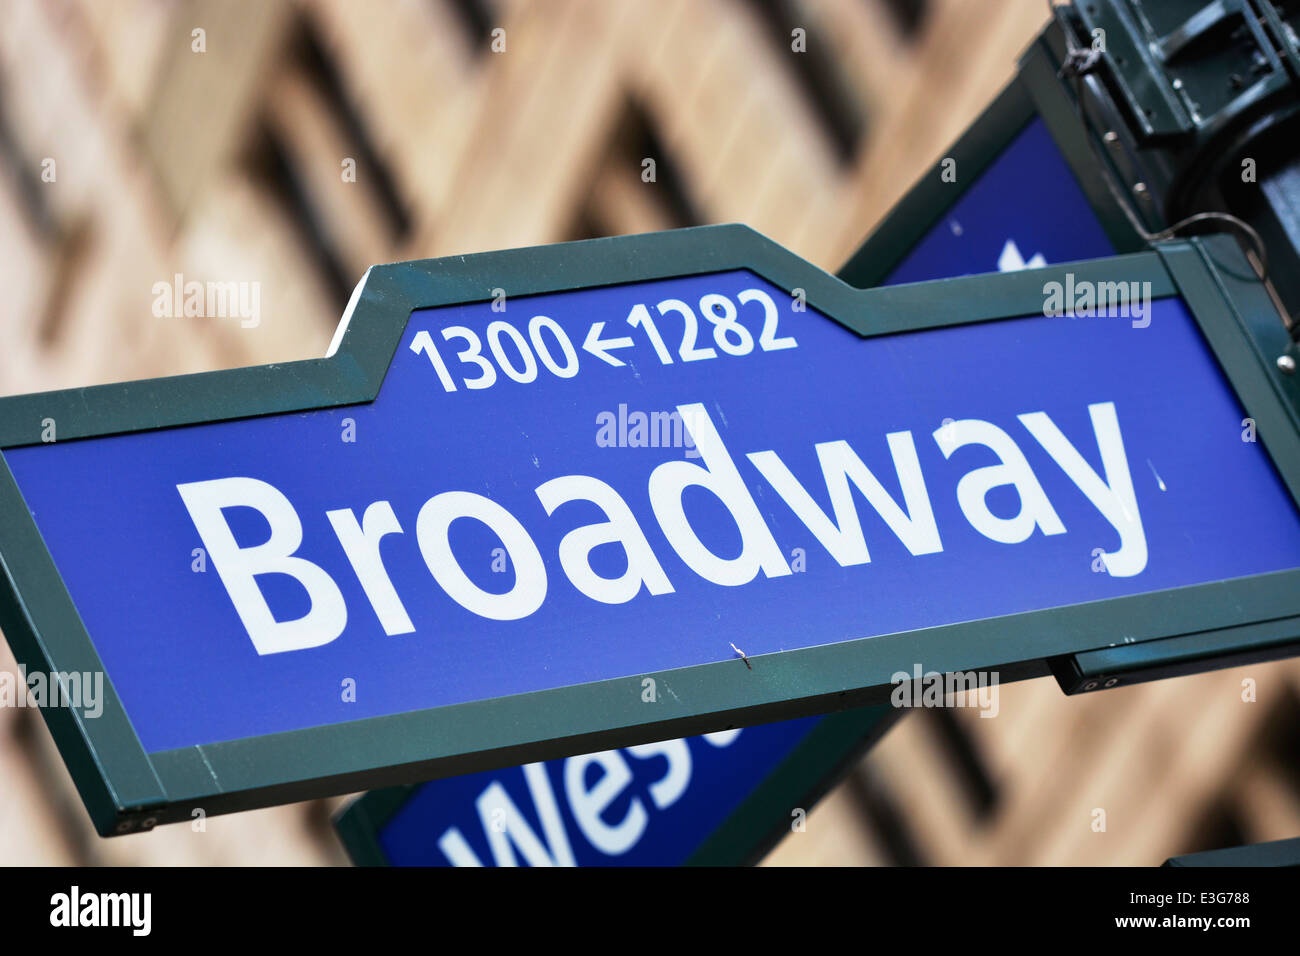 Broadway Street Sign, Directions - Stock Image